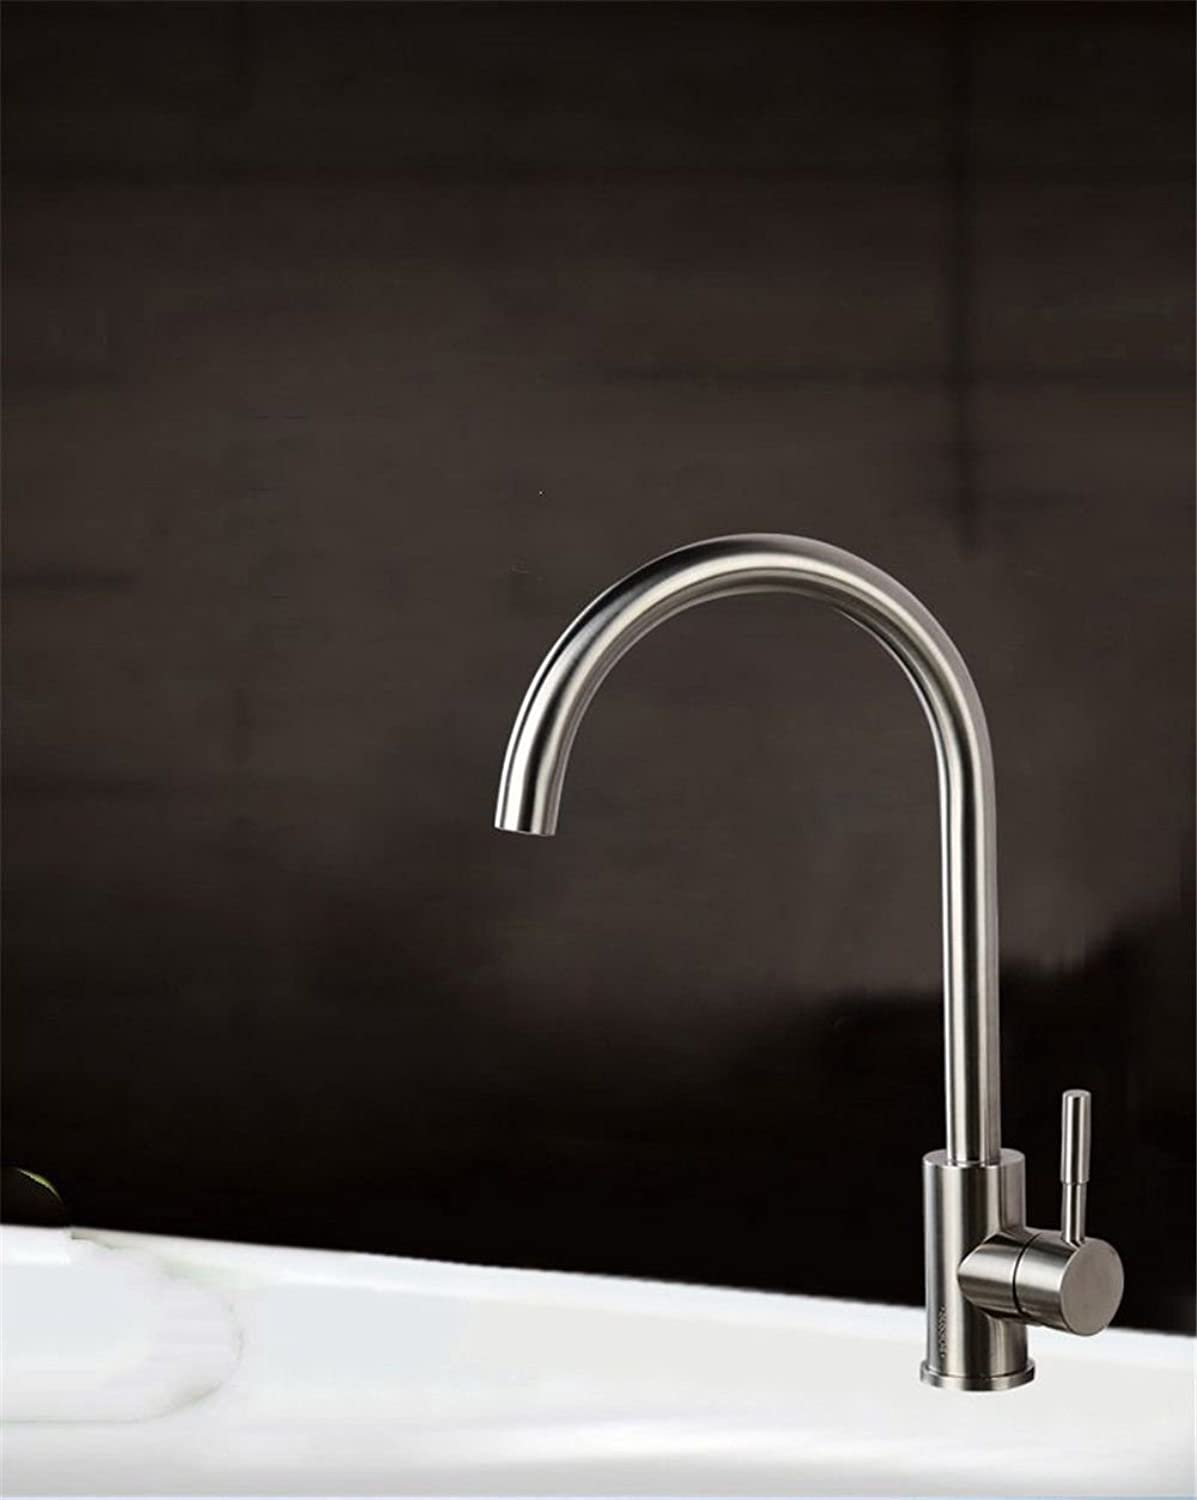 MARCU HOME Sink Mixer Tap Bathroom Kitchen Basin Tap Leakproof Save Water Kitchen Stainless Steel Cold Water Slot Brushed Nozzle